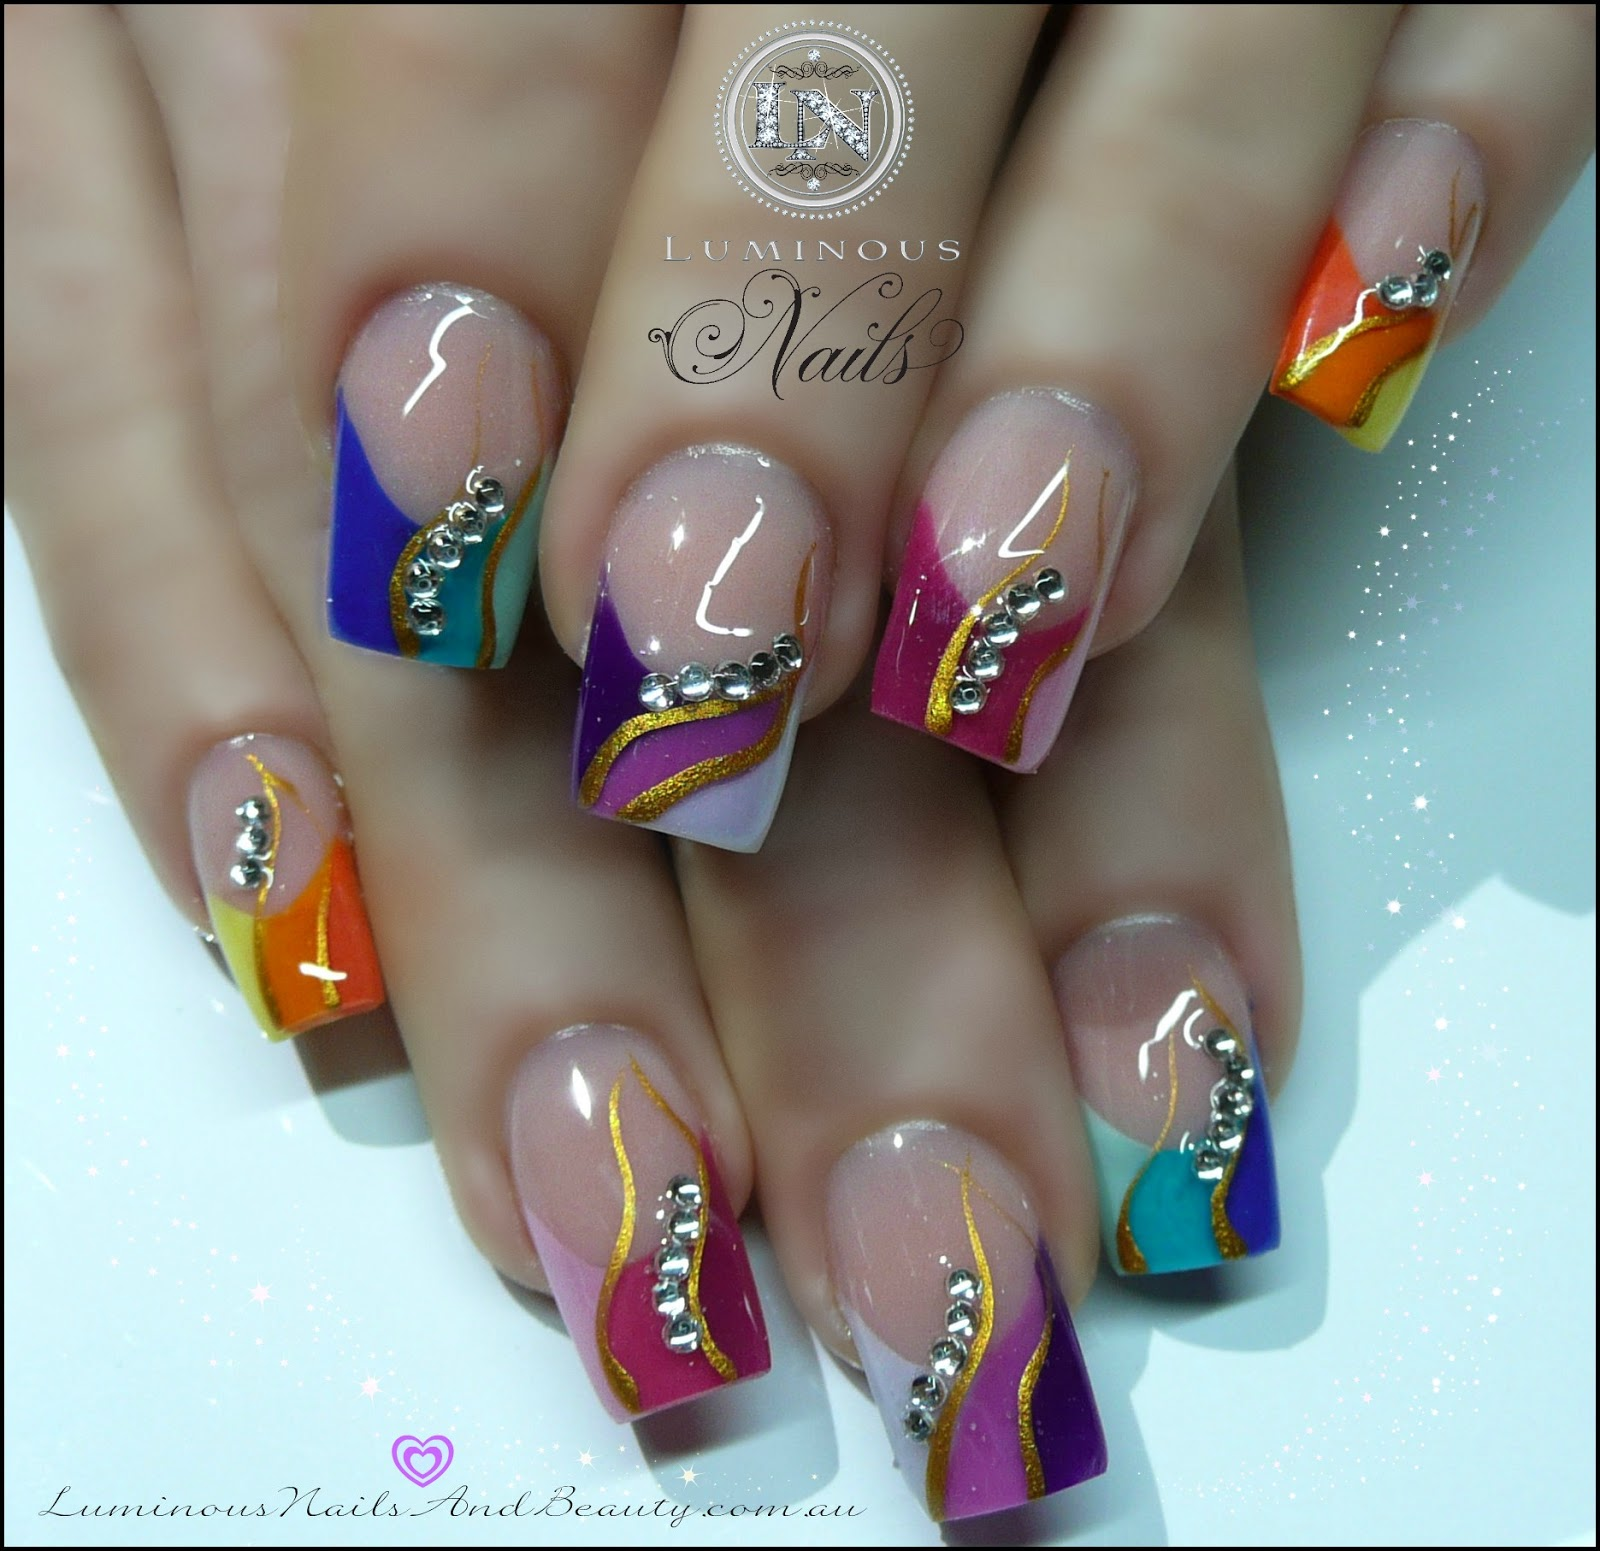 Luminous nails: may 2013